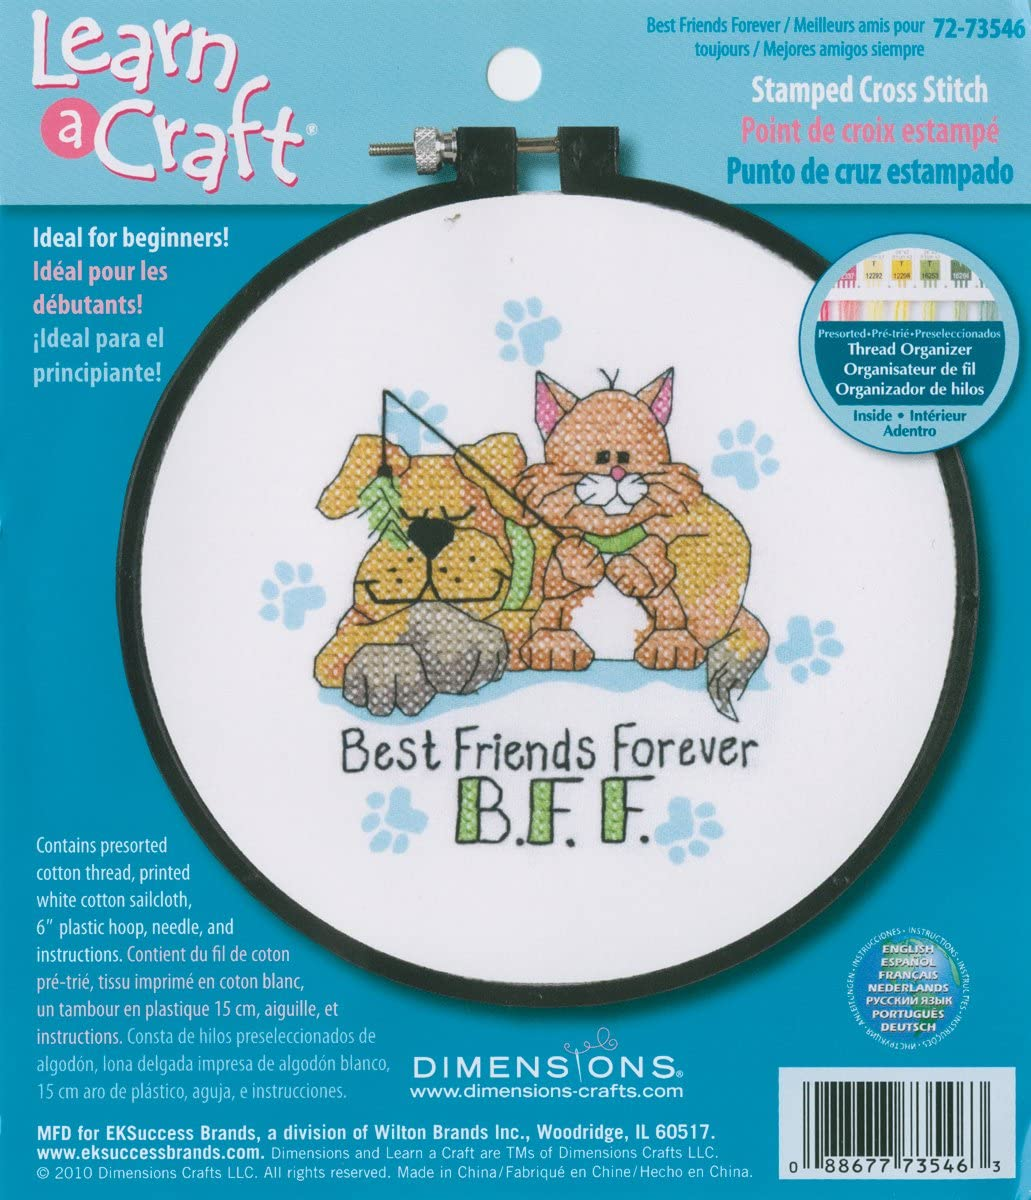 DIMENSIONS ''Best Friends Forever'' Stamped Cross Stitch Kit for Beginners, 6'' D